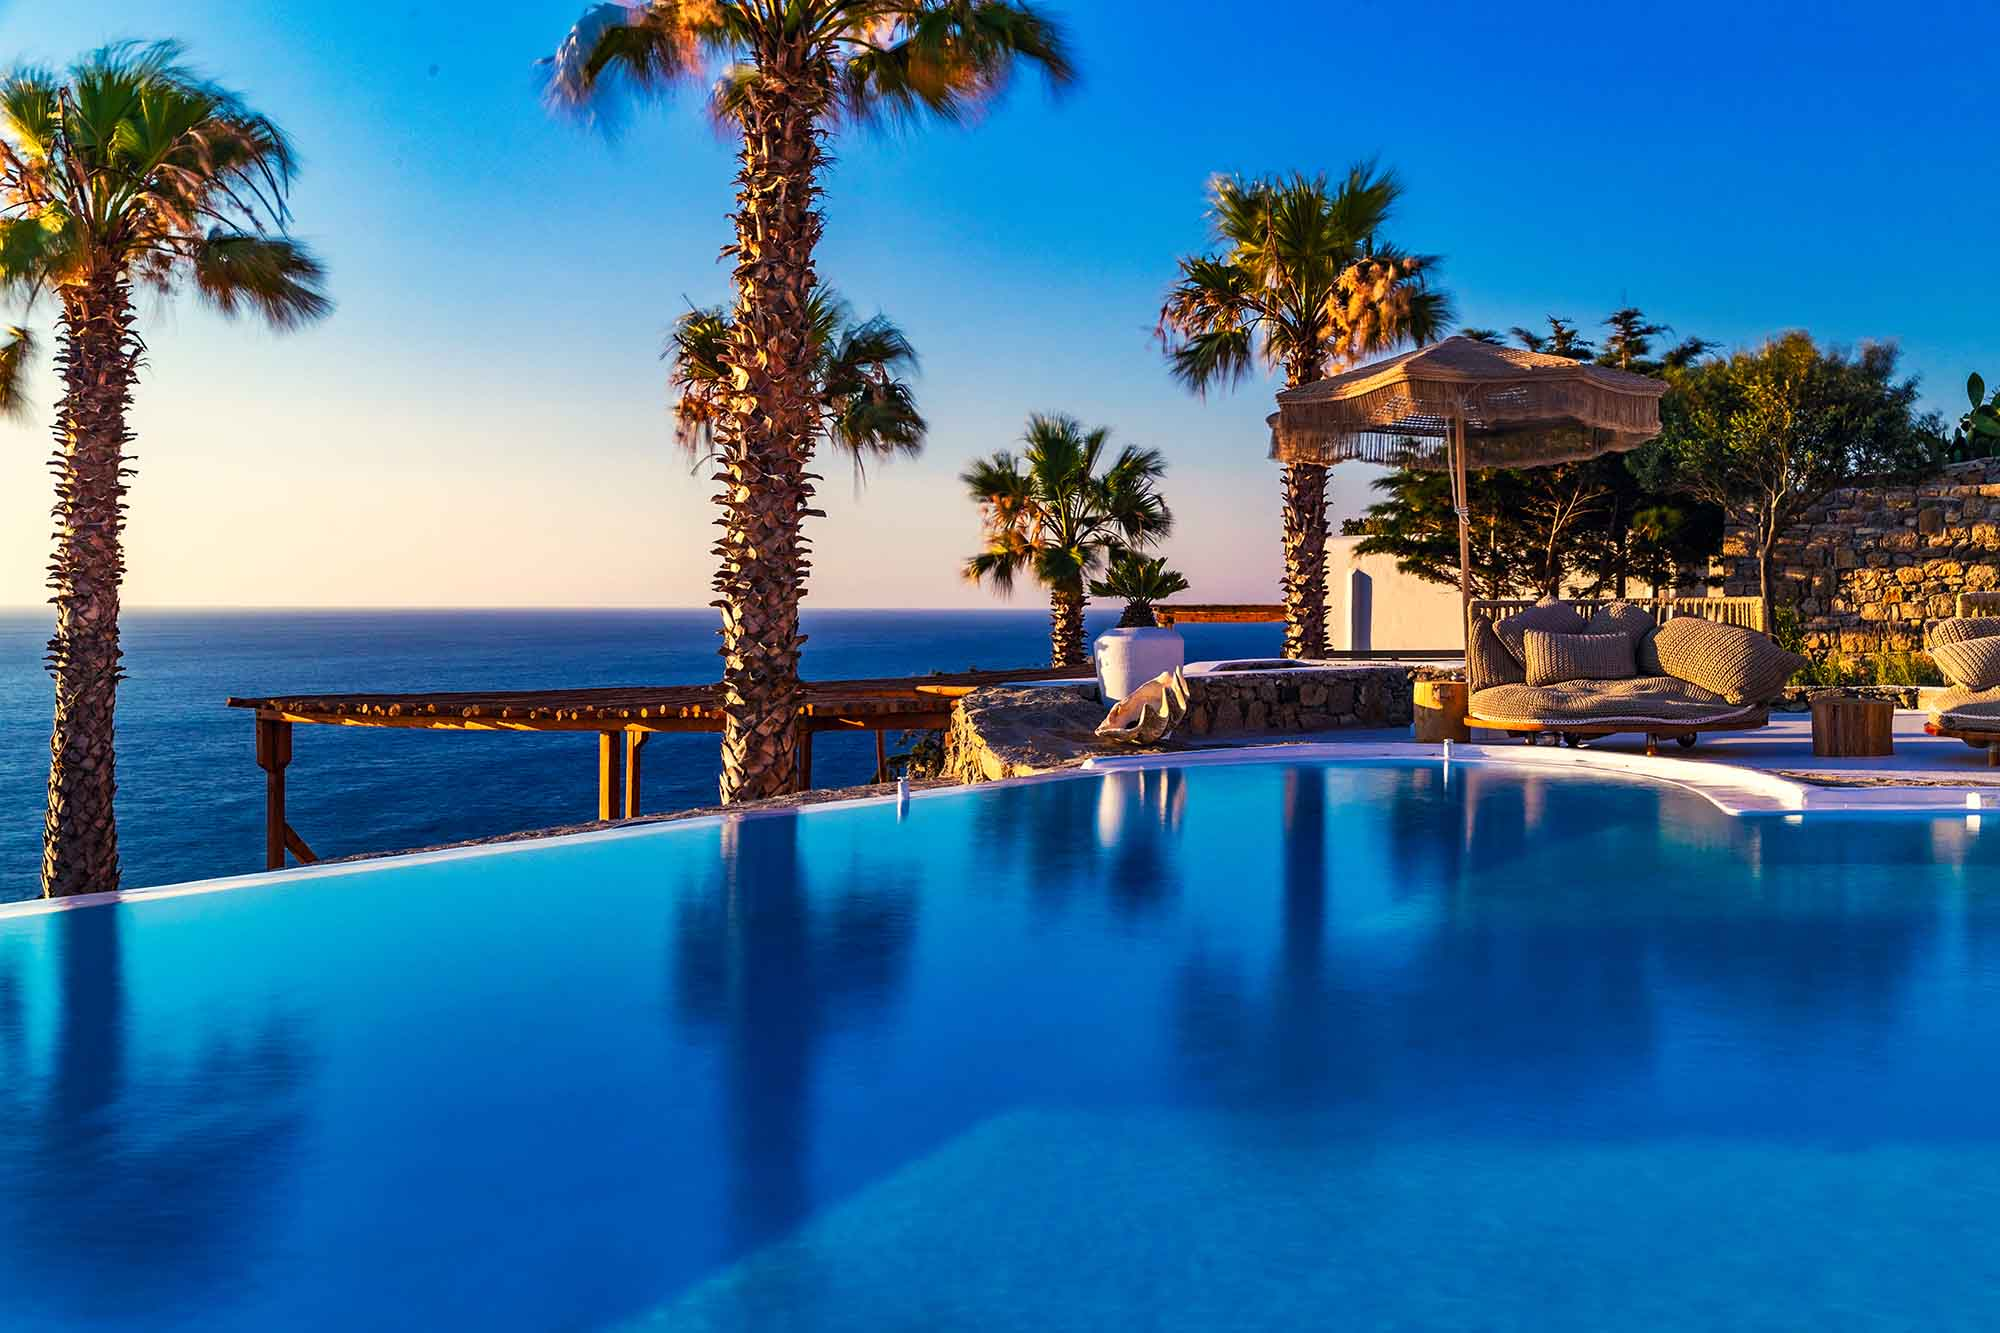 RENT A LUXURIOUS VILLA BY THE SEA IN MYKONOS - VILLA KARKOS - swimming pool with sea view